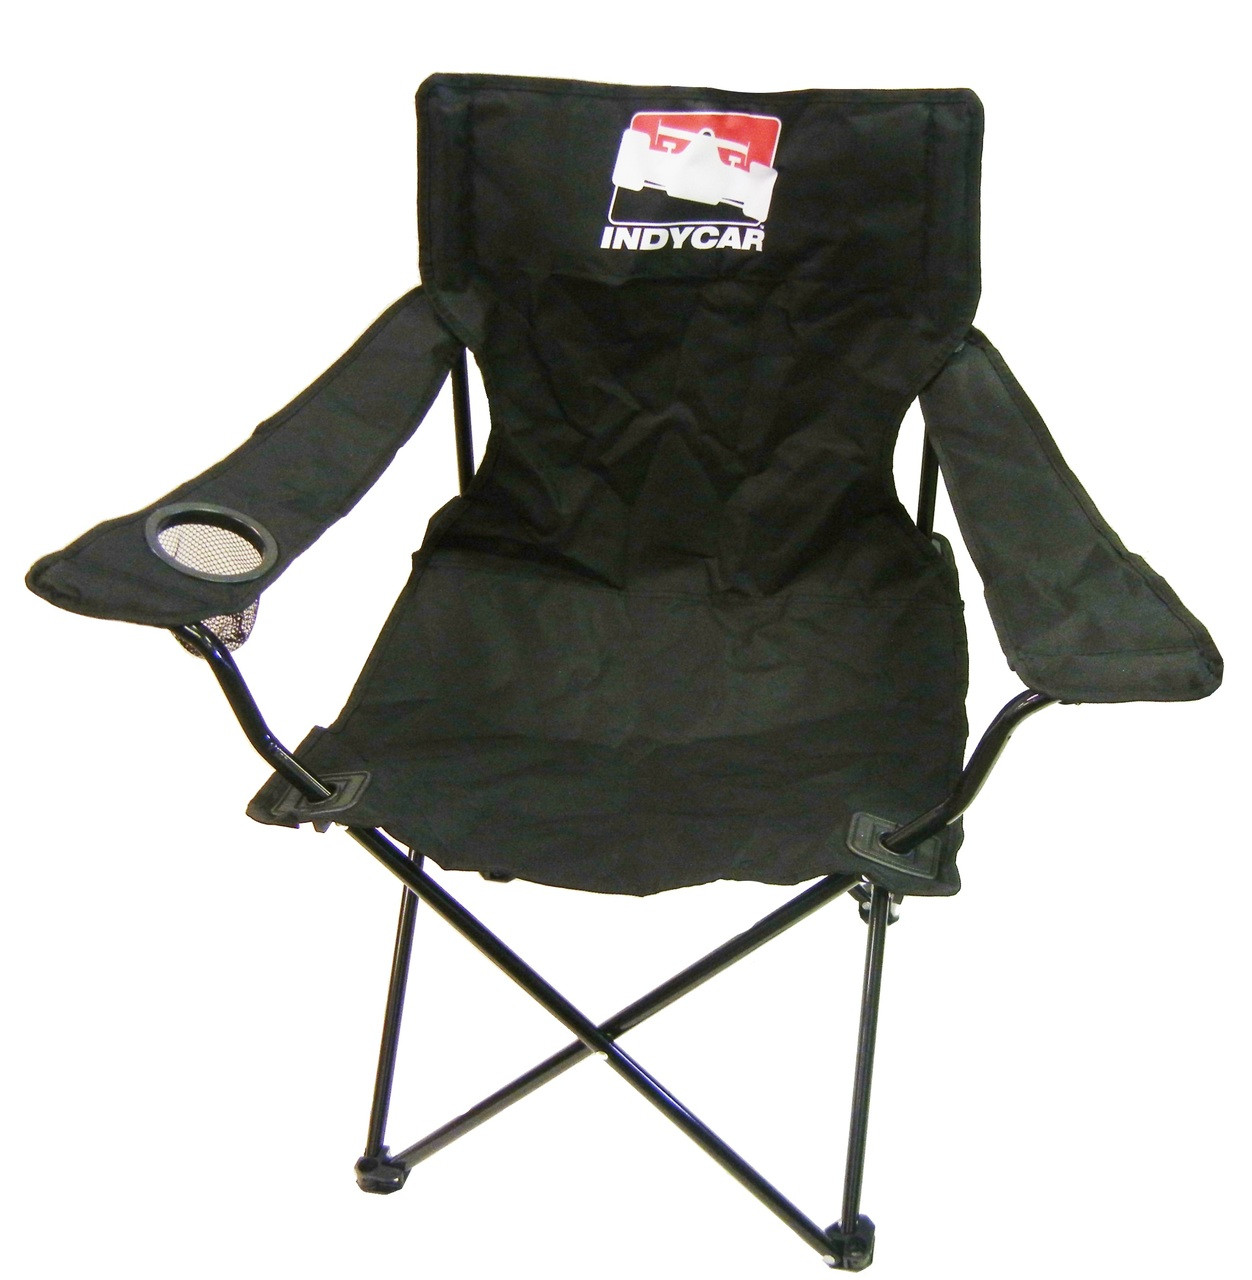 Collapsible Chair Indycar Collapsible Quad Chair Indianapolis Motor